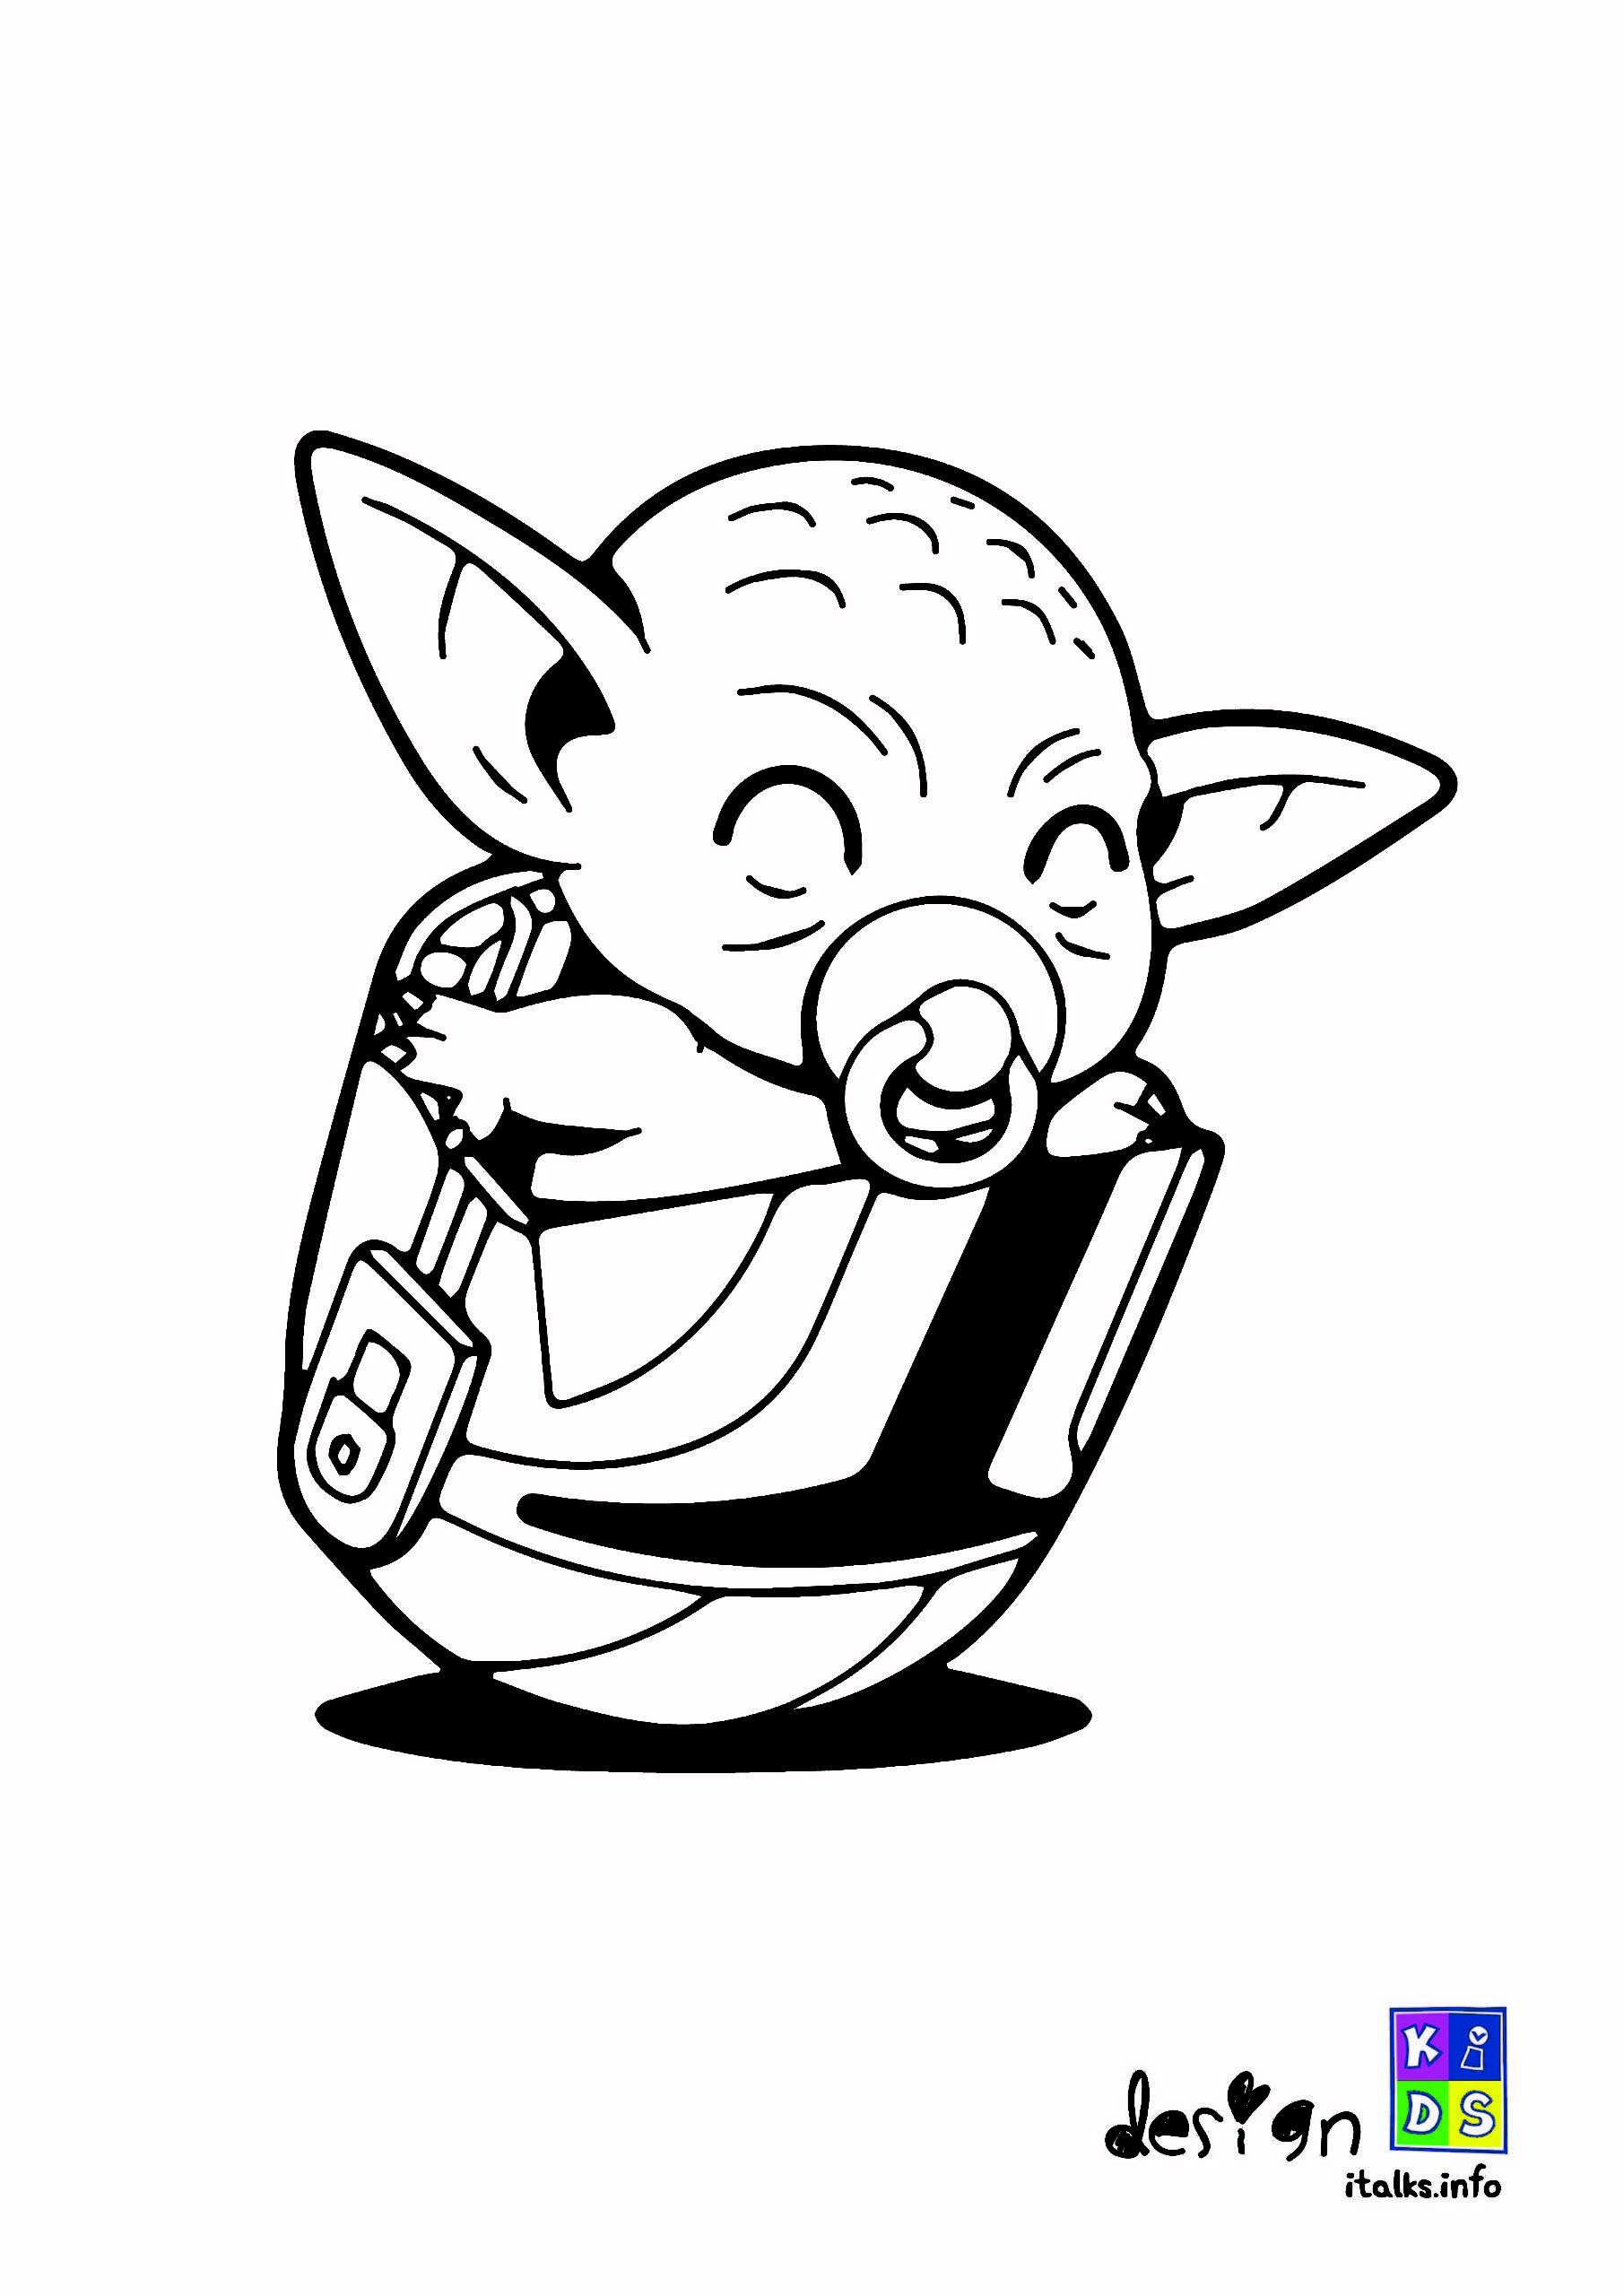 Baby Yoda Coloring Page Bubakids Com Collection Of Cartoon Coloring Pages For Teenage Printable That In 2020 Coloring Pages Cartoon Coloring Pages Star Wars Drawings